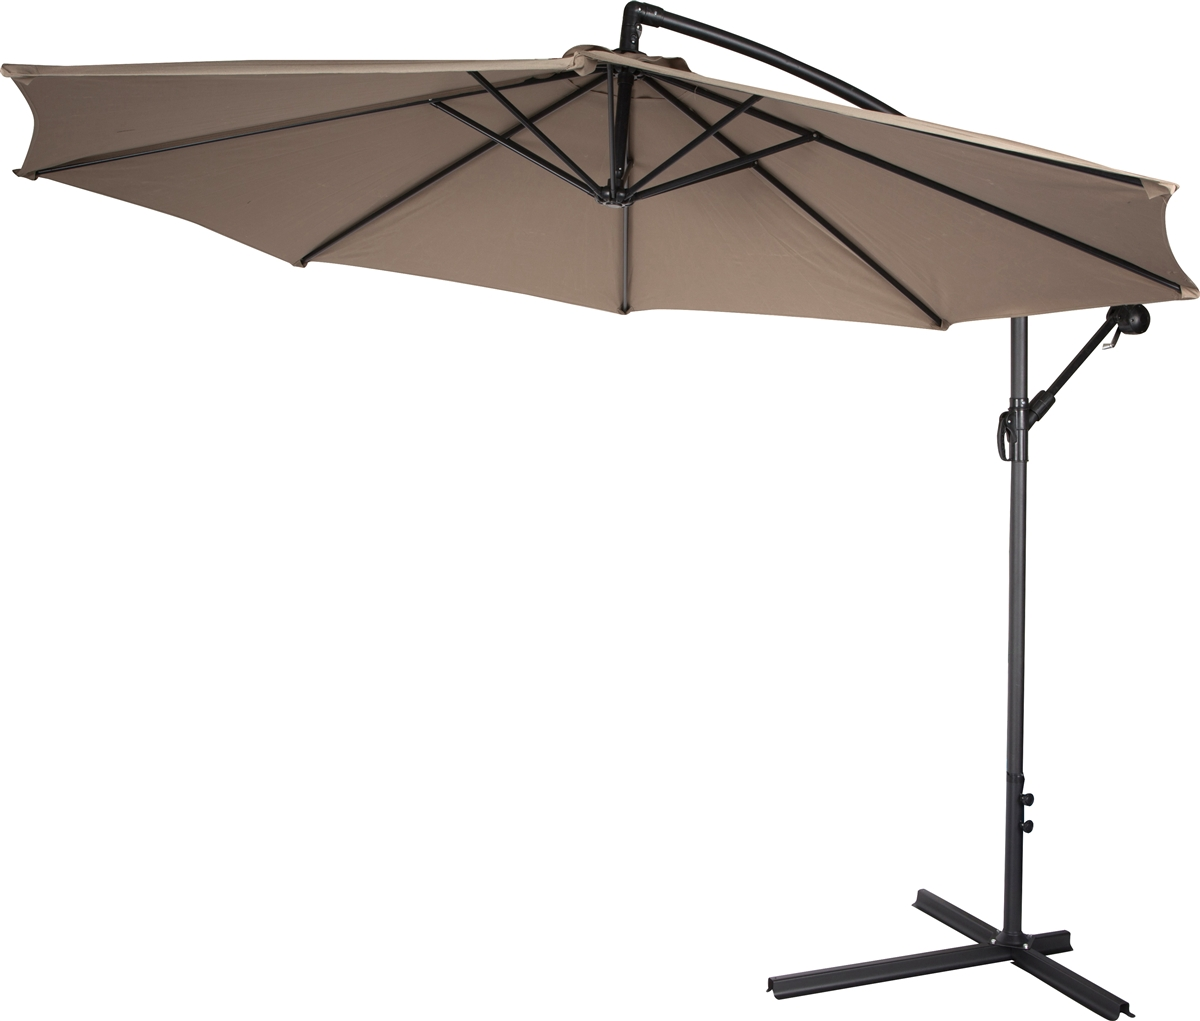 10u0027 Deluxe Polyester Tan Offset Patio Umbrella By Trademark Innovations